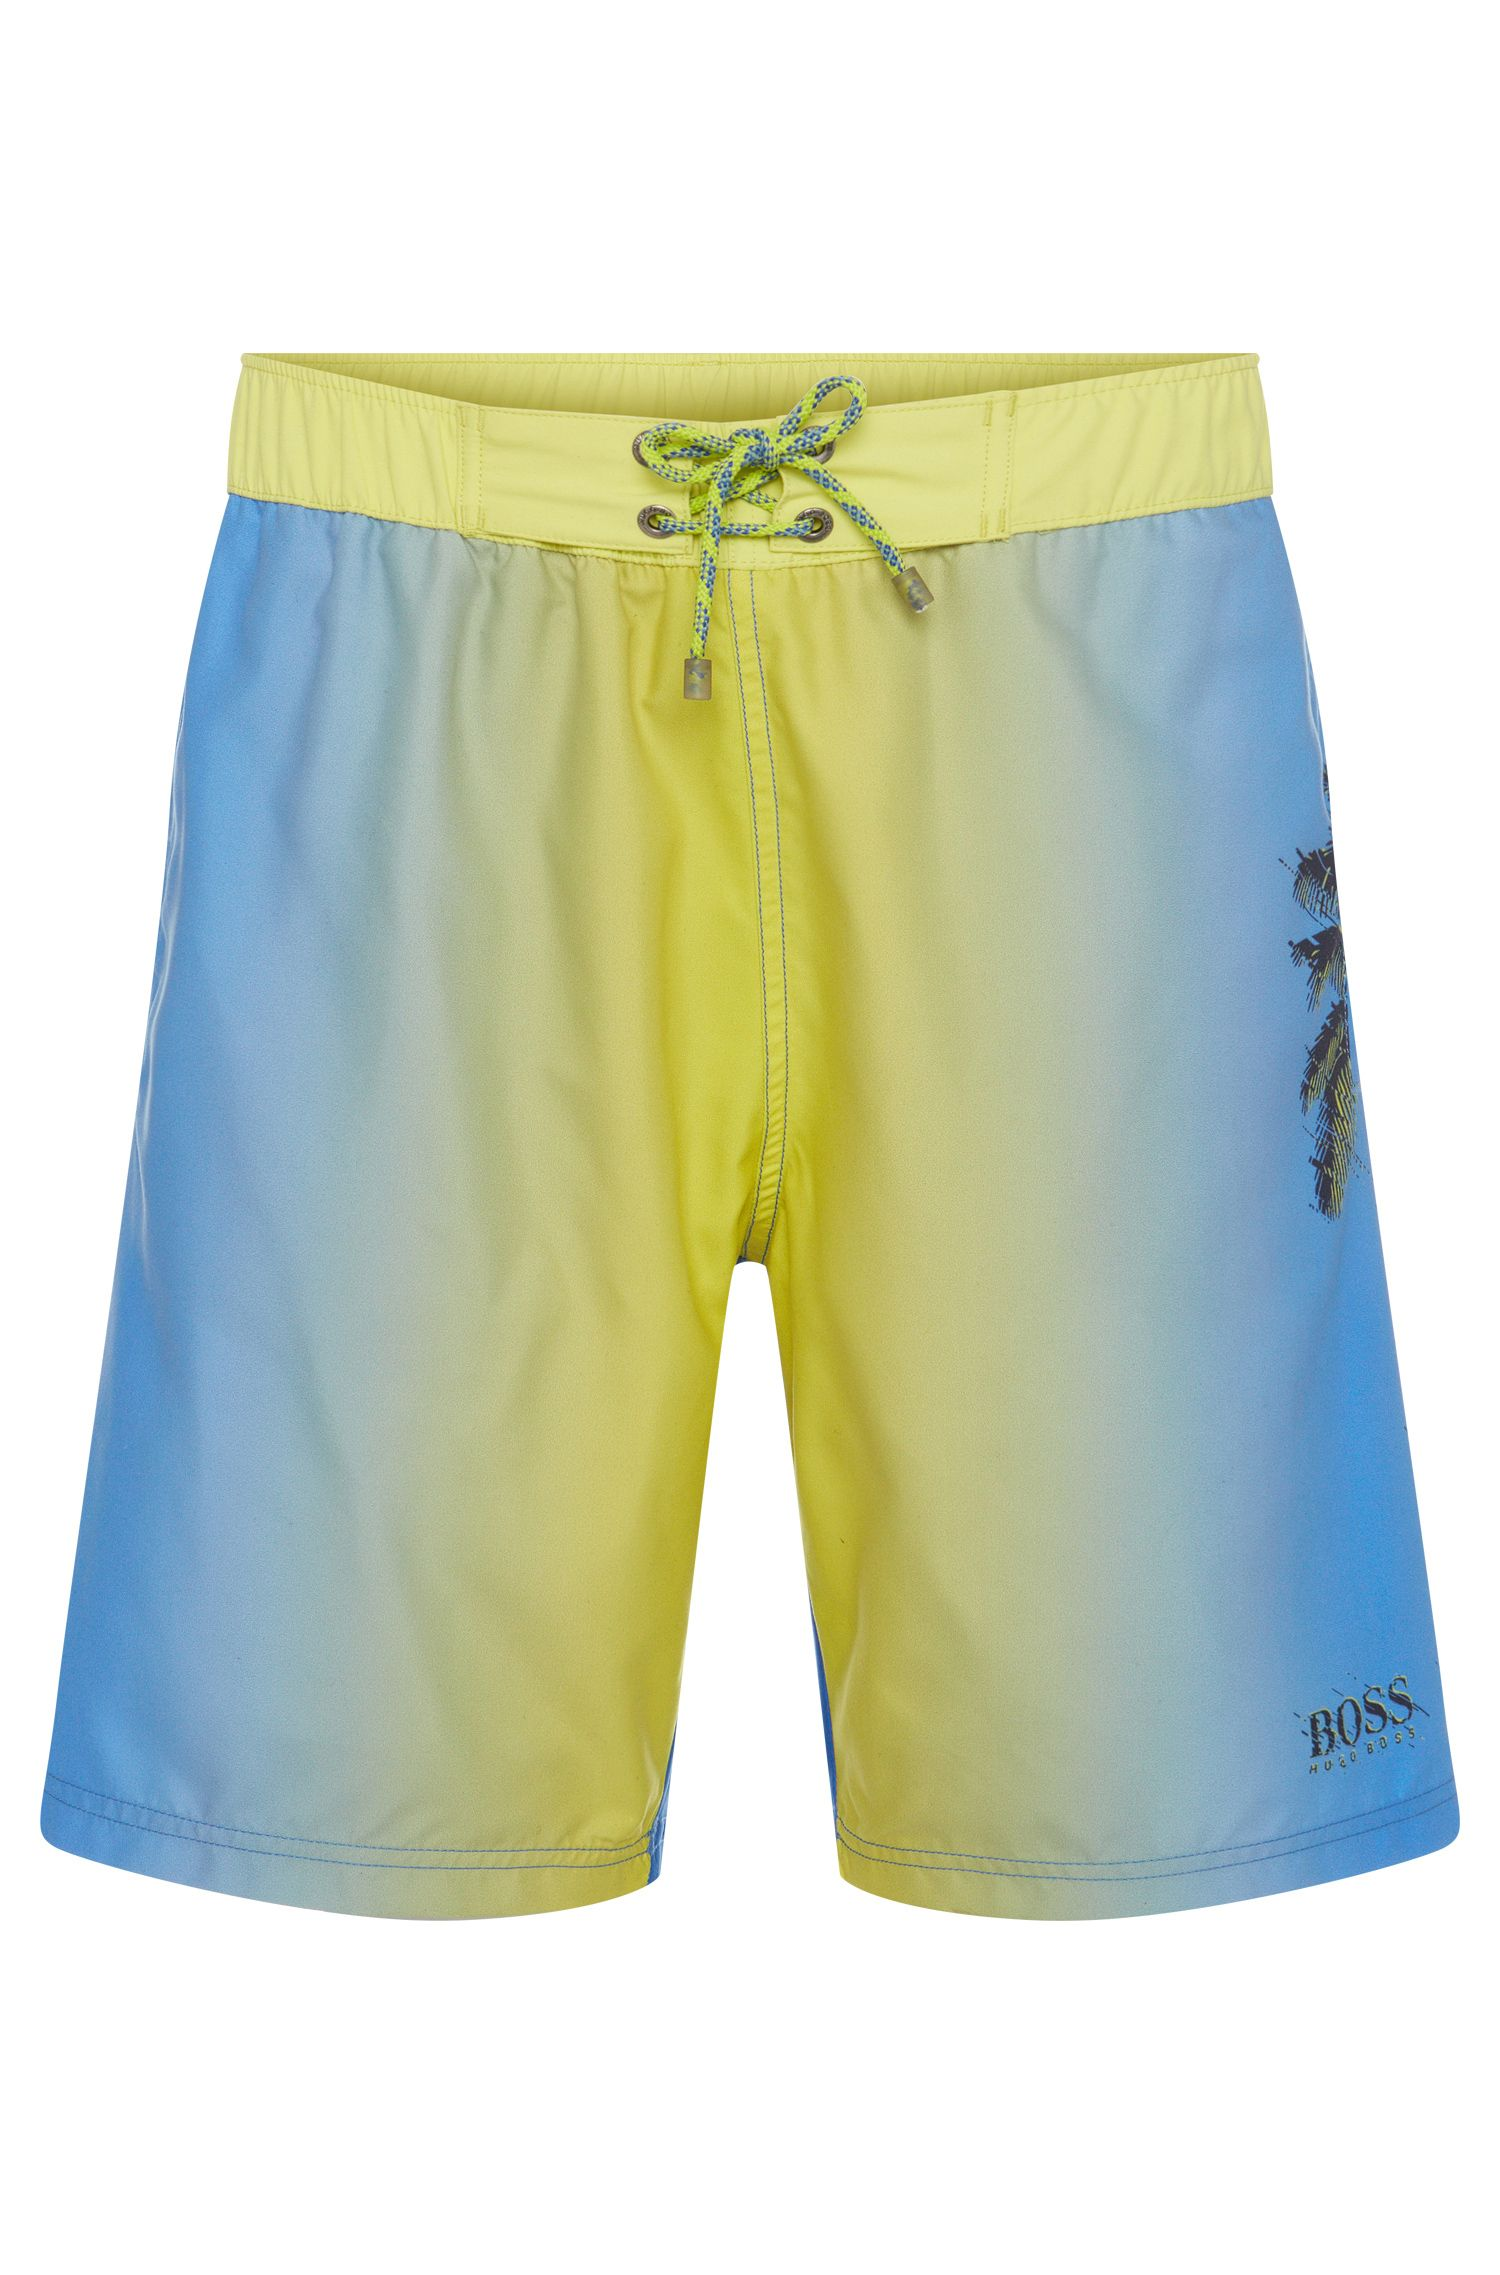 'Orinoco ' | Board Short  Ombre Swim Trunks